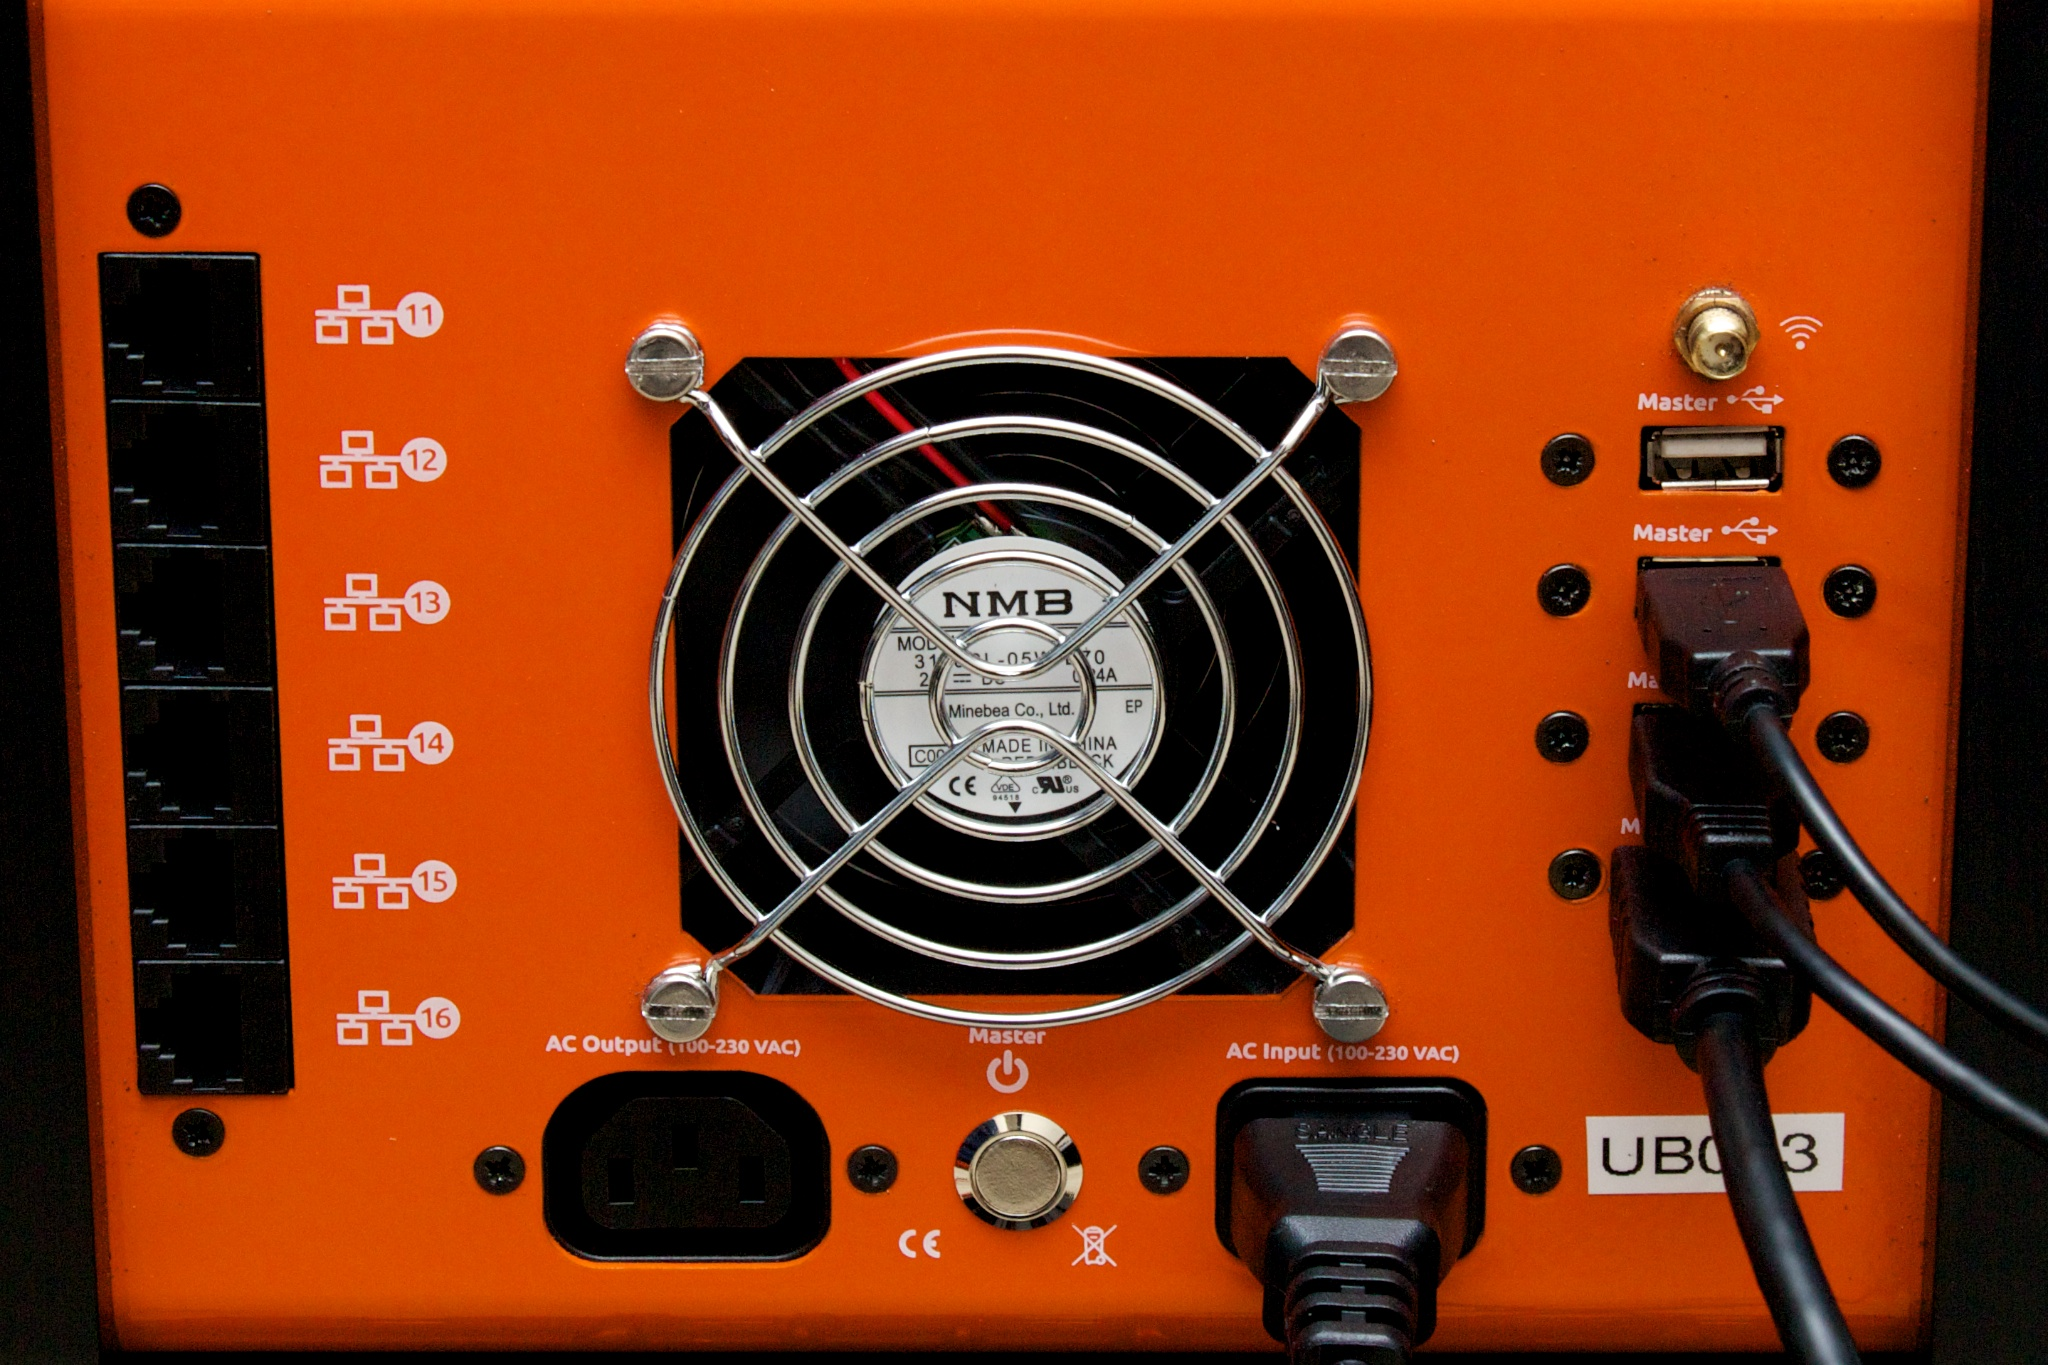 The rear of the Orange Box, showing Ethernet connections (they're attached to the internal switch and are used to expand the Orange Box—like if you wanted to cluster it with a twin), power, USB, and HDMI. The USB and HDMI connect to the control node.